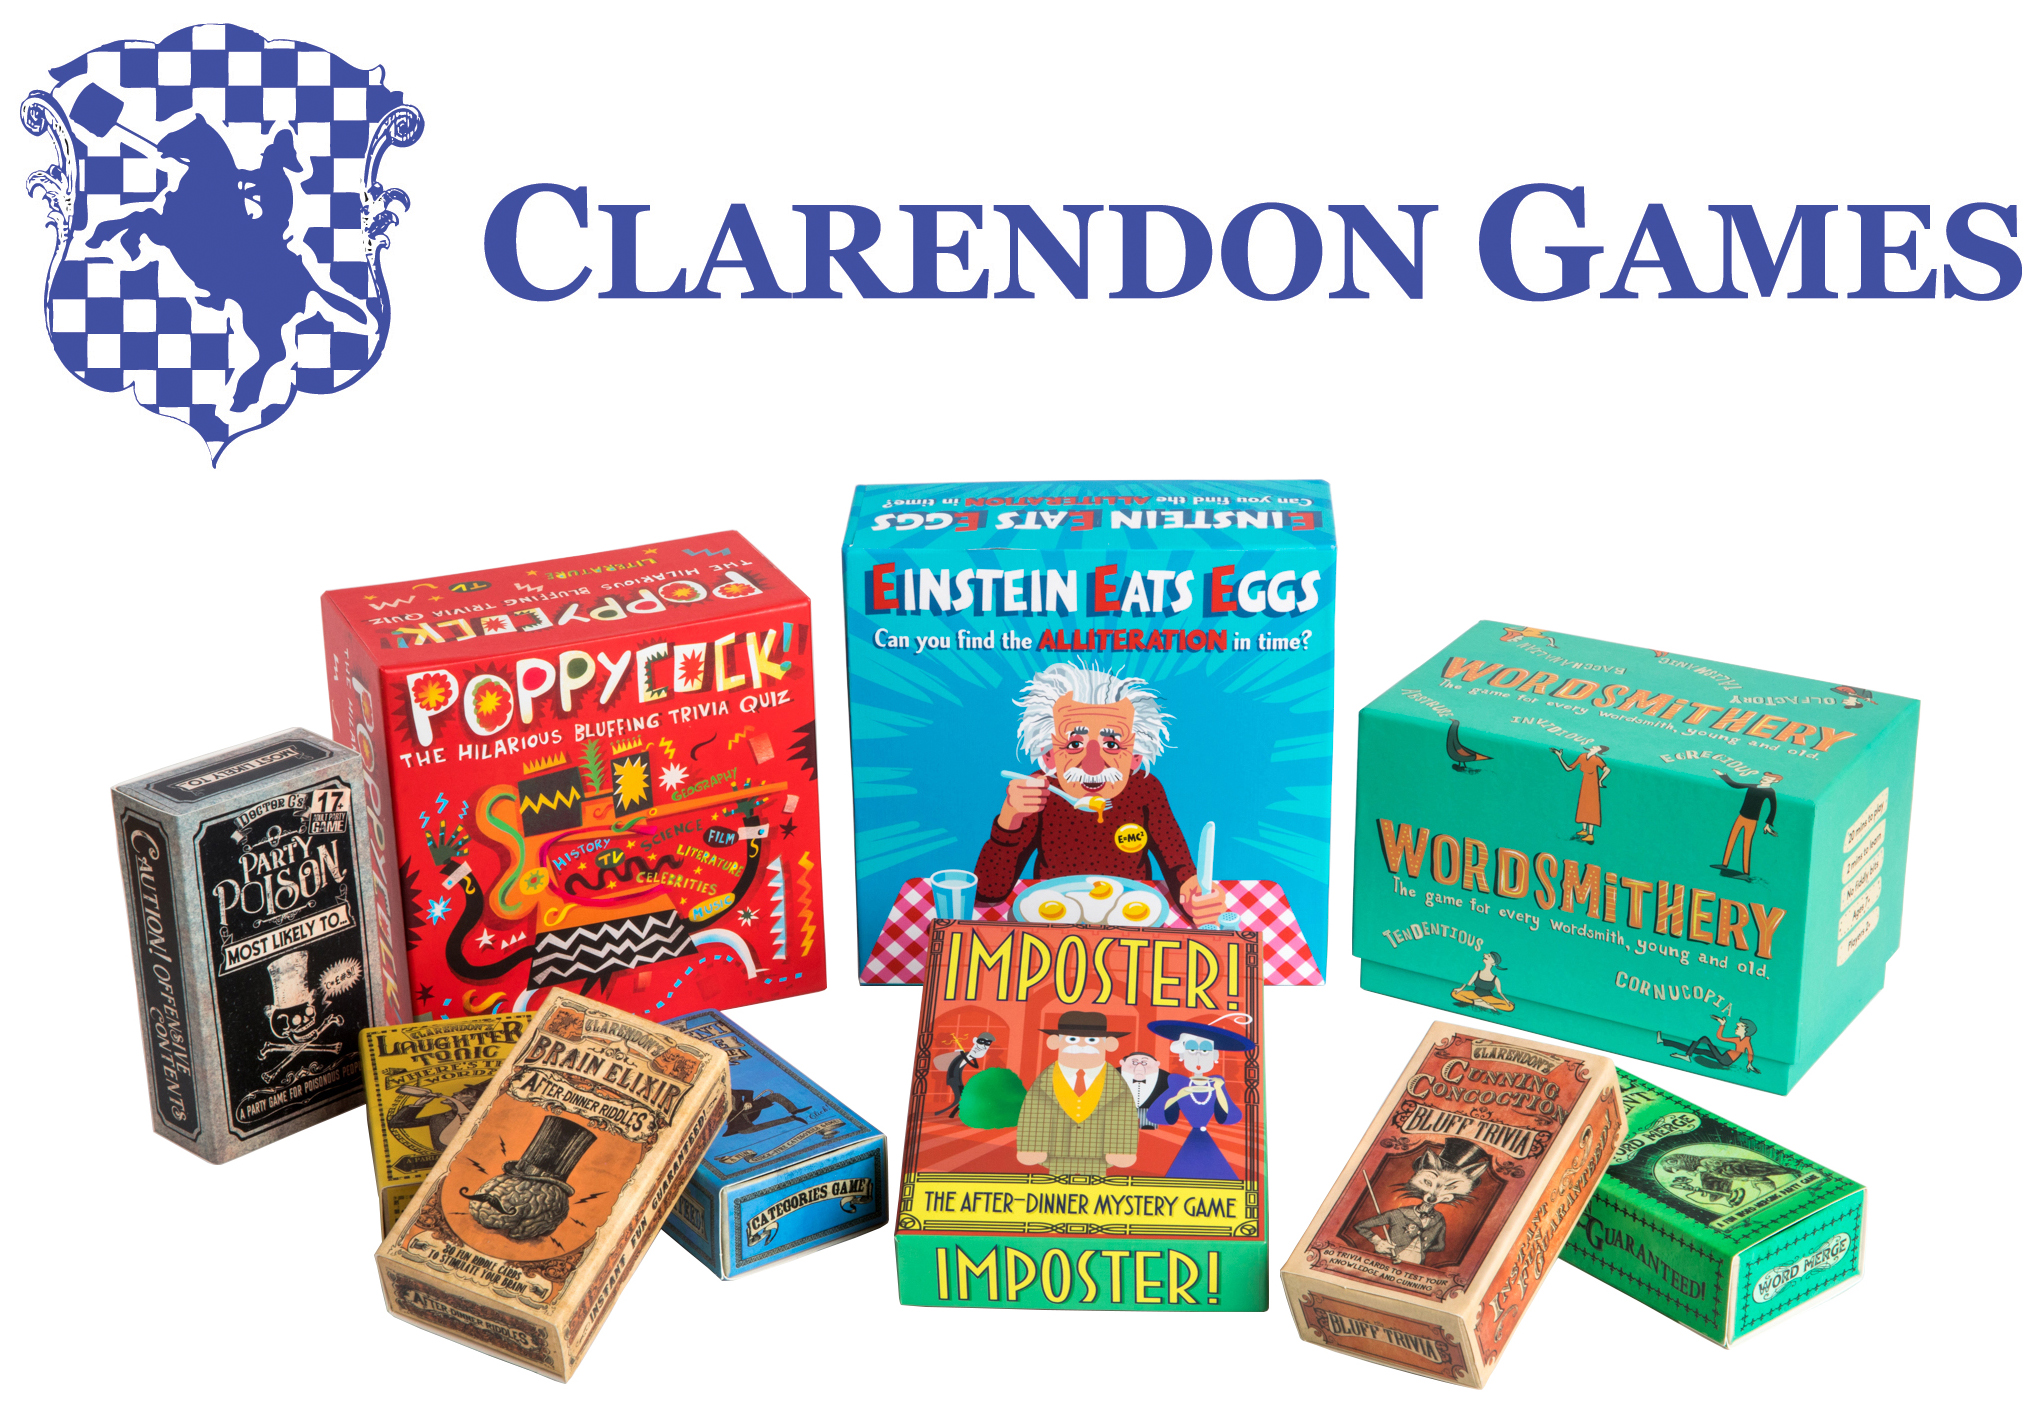 Clarendon full set games & logo HIGH RES